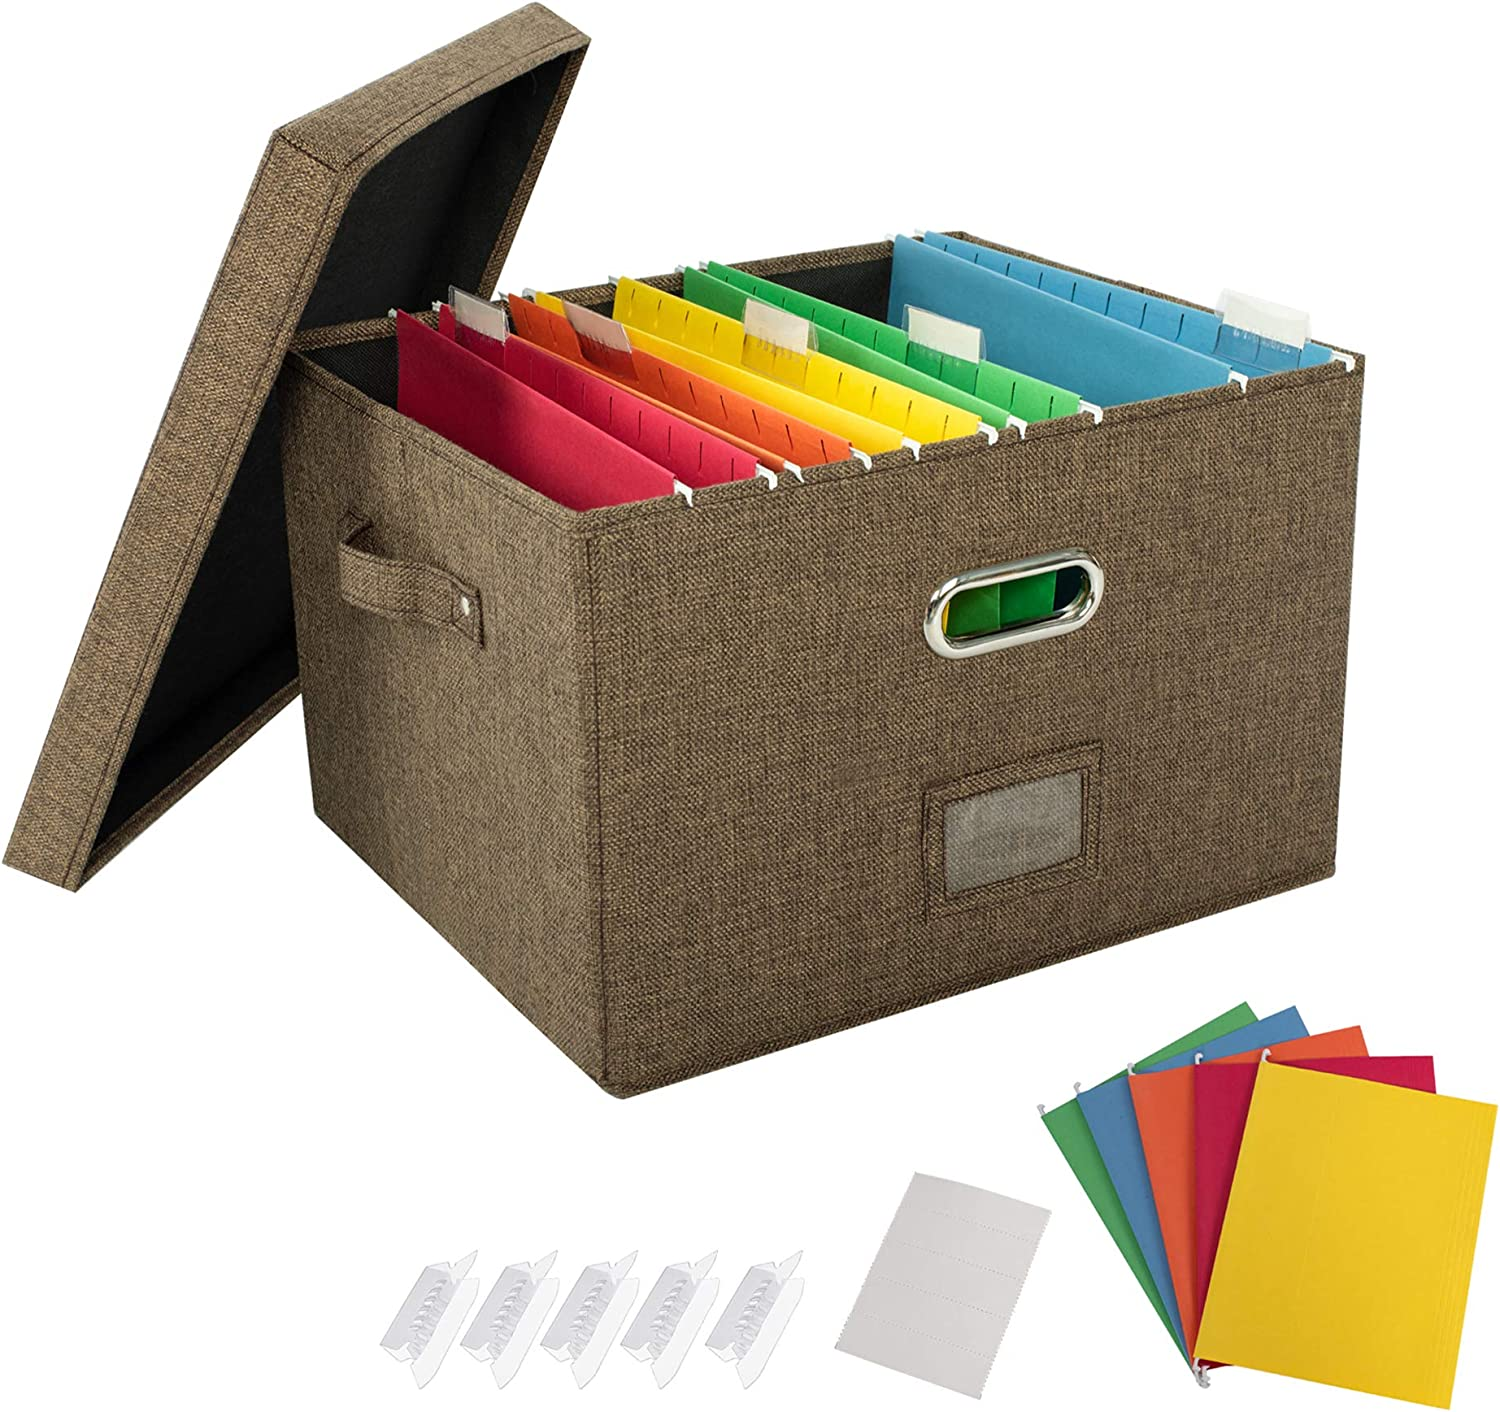 JSungo 2 Pack File Organizer Box Office Document Storage with Lid, Collapsible Linen Hanging Filing Organization, Home Portable Storage with Handle, Letter Size Legal Folder, Brown